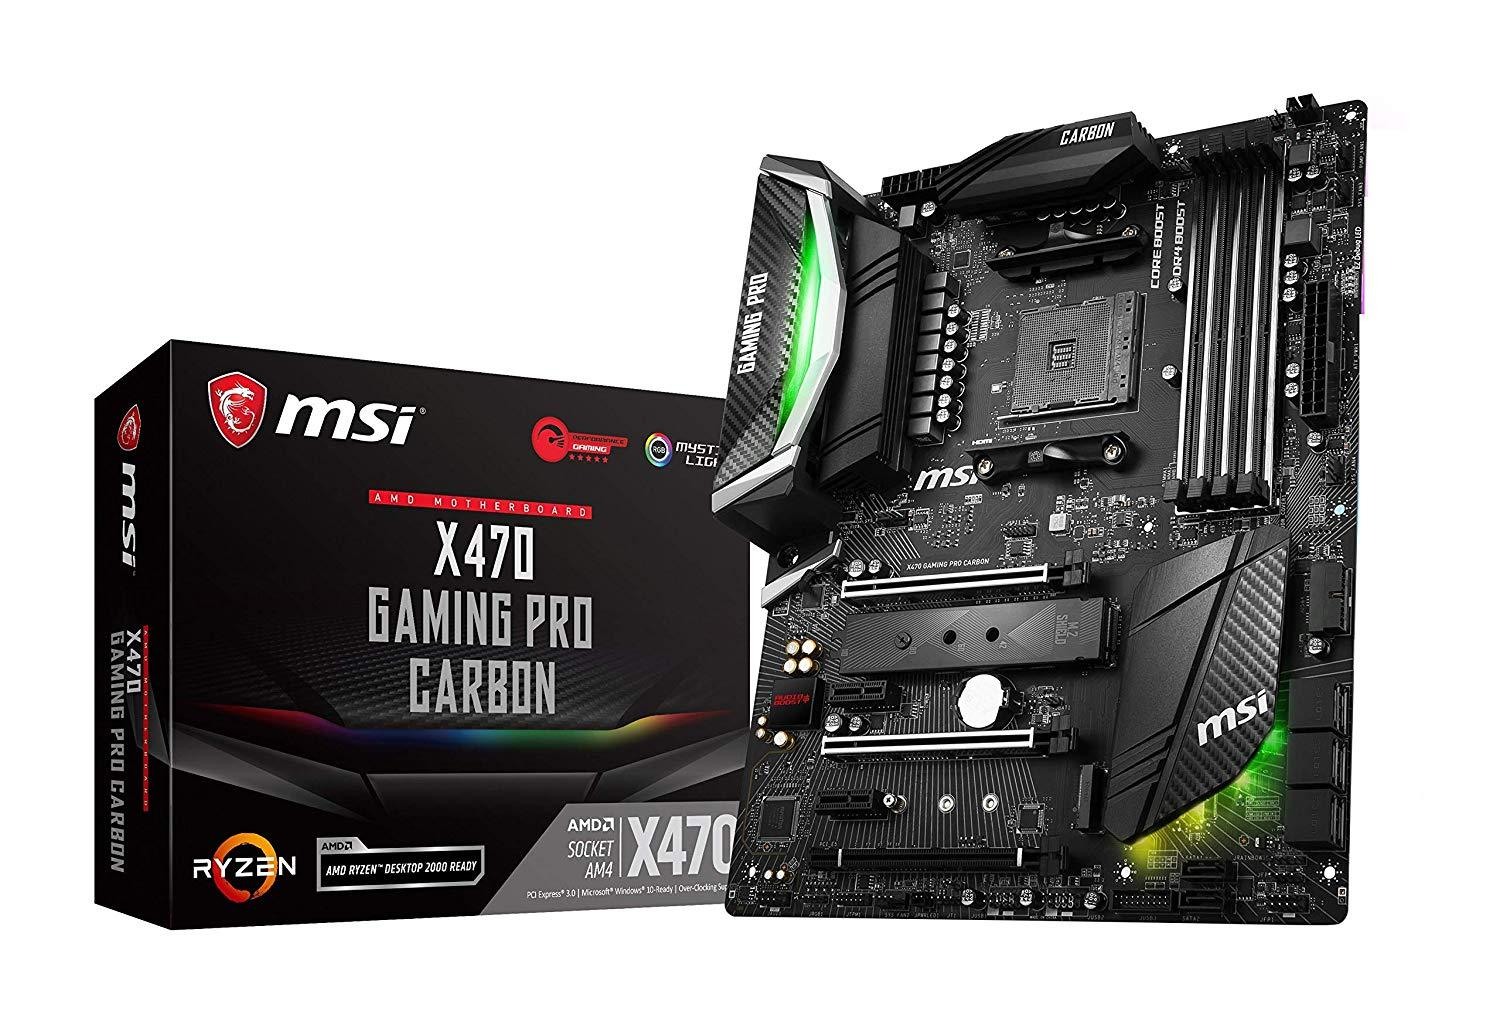 MSI X470 Gaming Pro Carbon - AMD ATX Motherboard